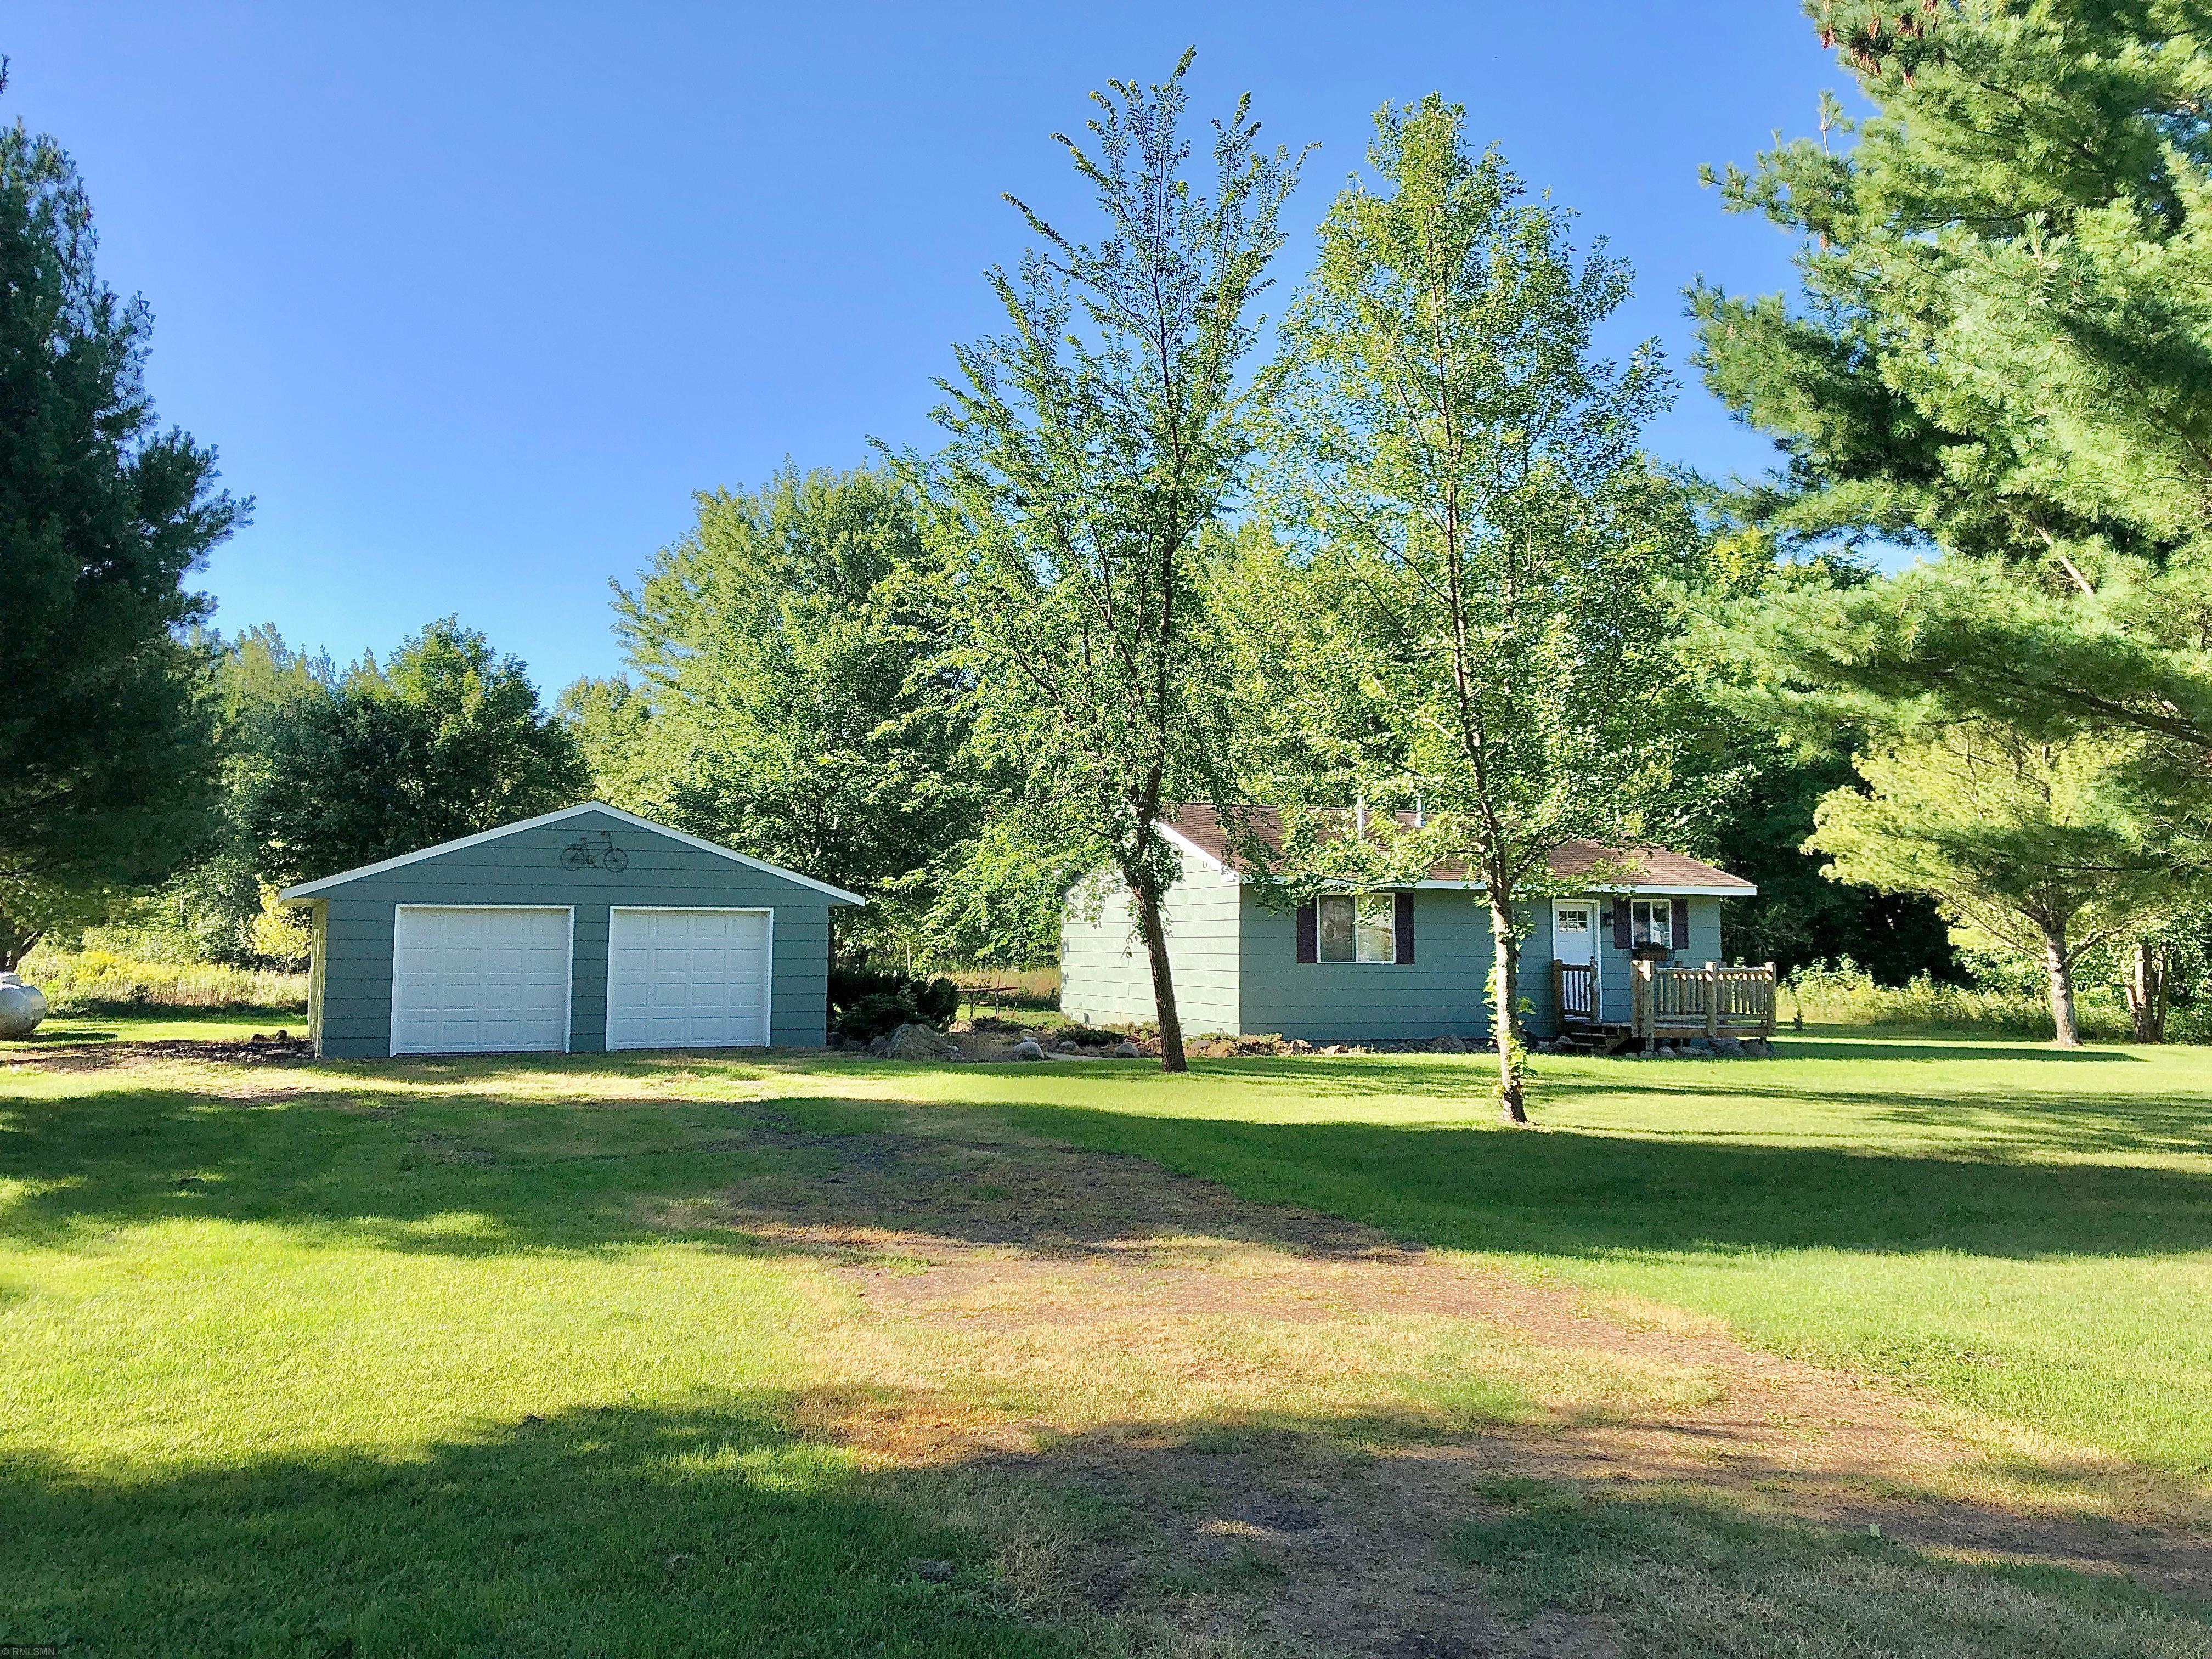 20119 Barbara Lane Property Photo - Crosby, MN real estate listing